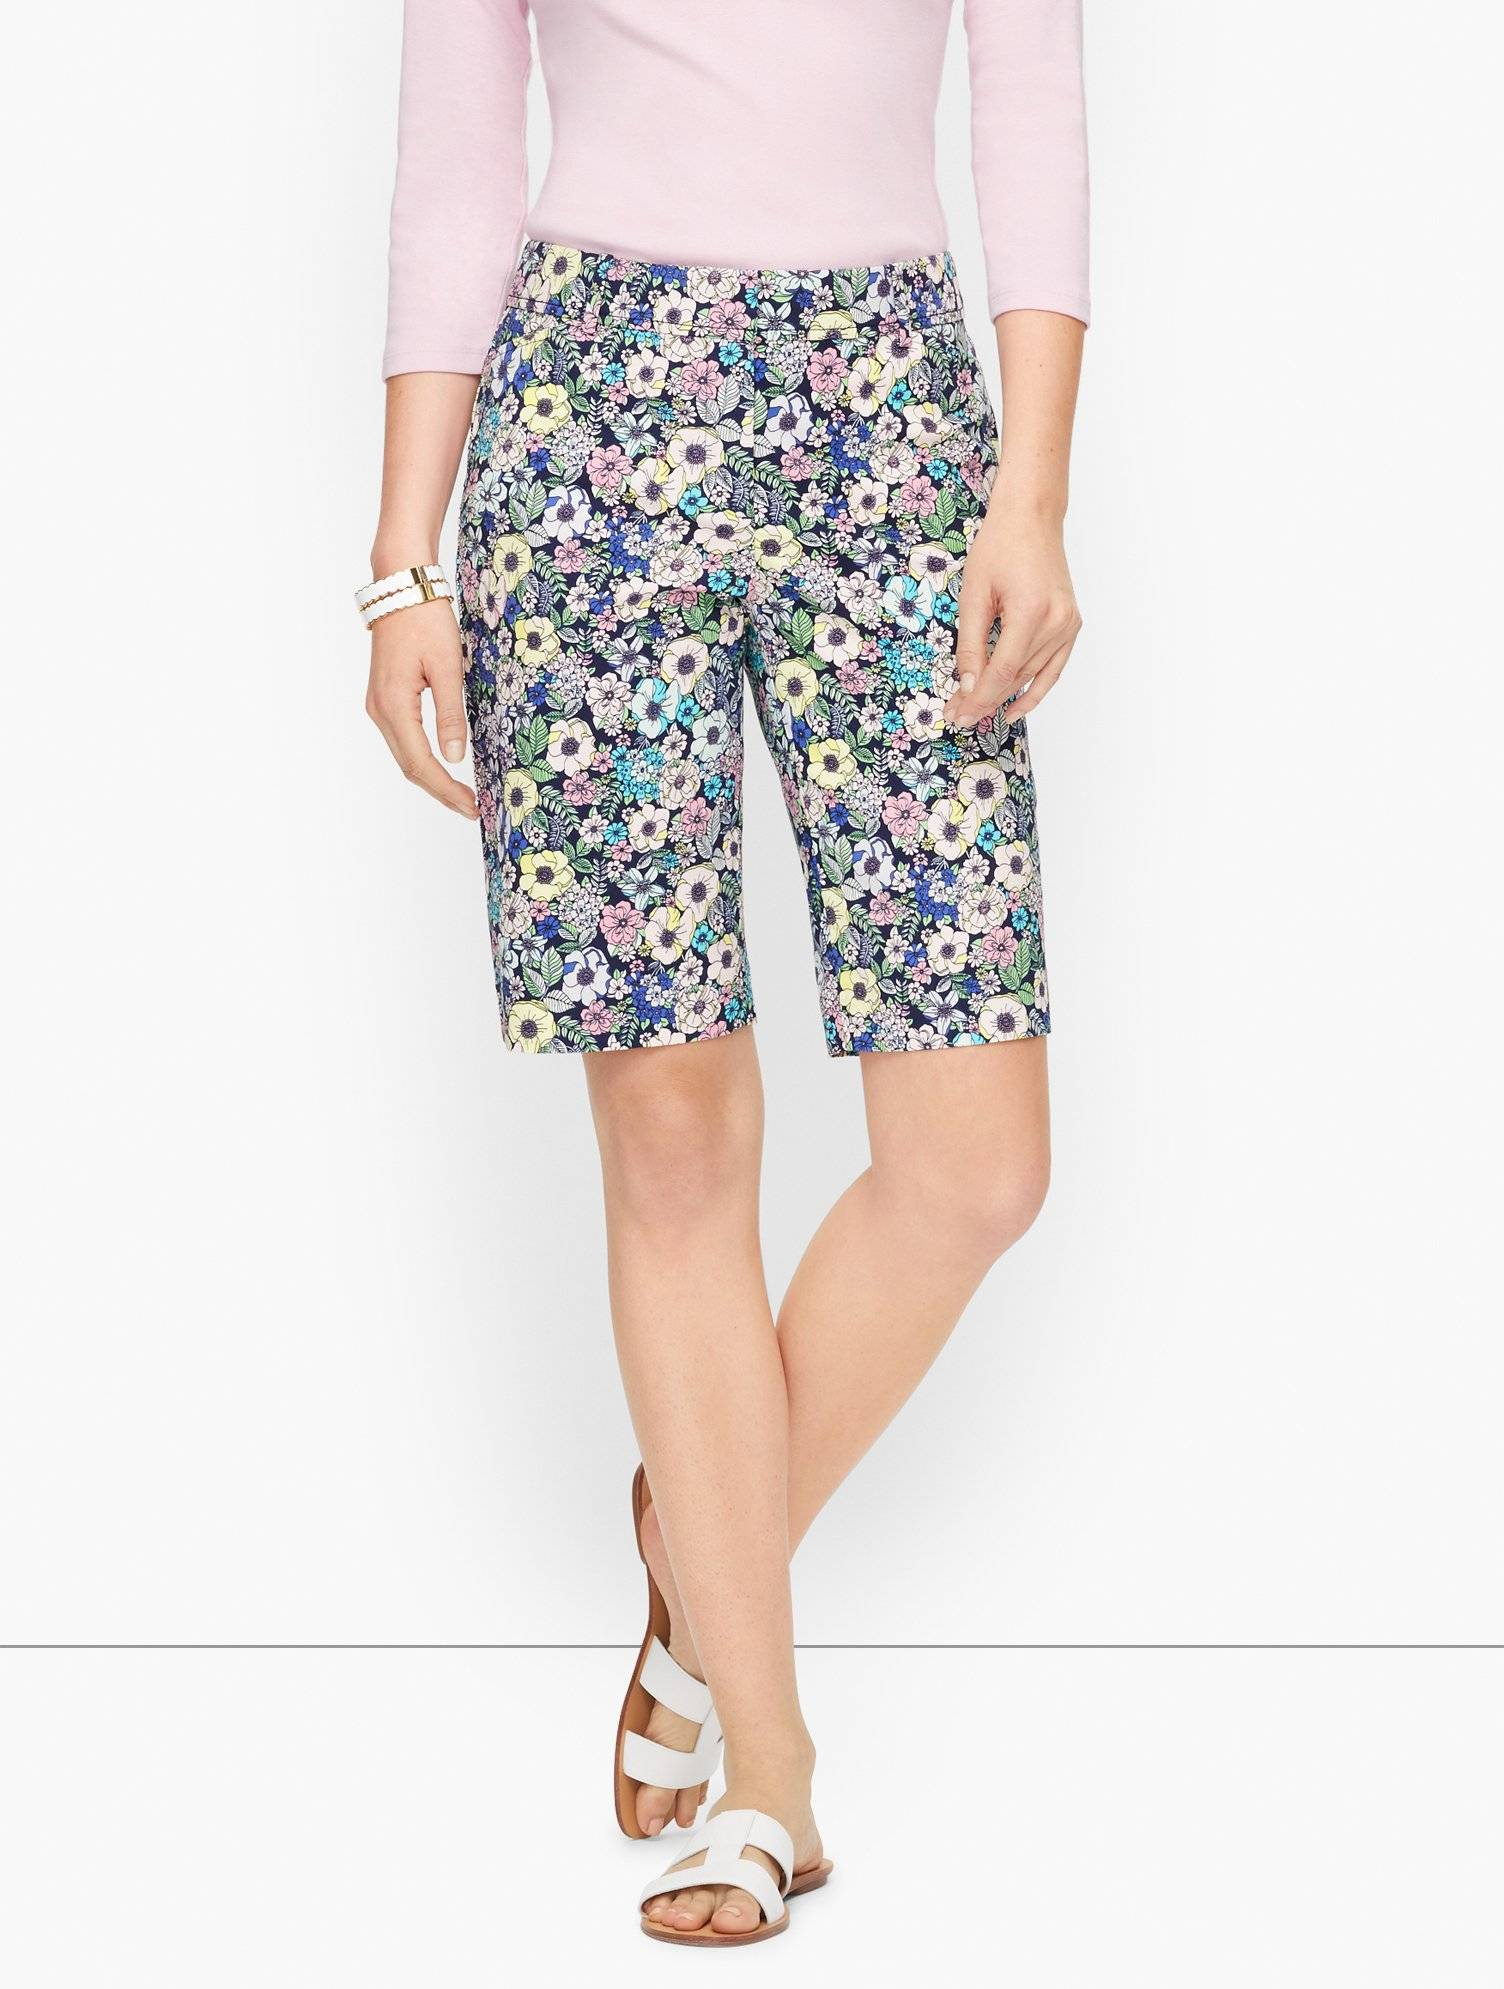 Talbots Perfect Bermuda Shorts - Lush Garden Print - Ink - 24 Talbots  - Ink - Size: female - Size: 24